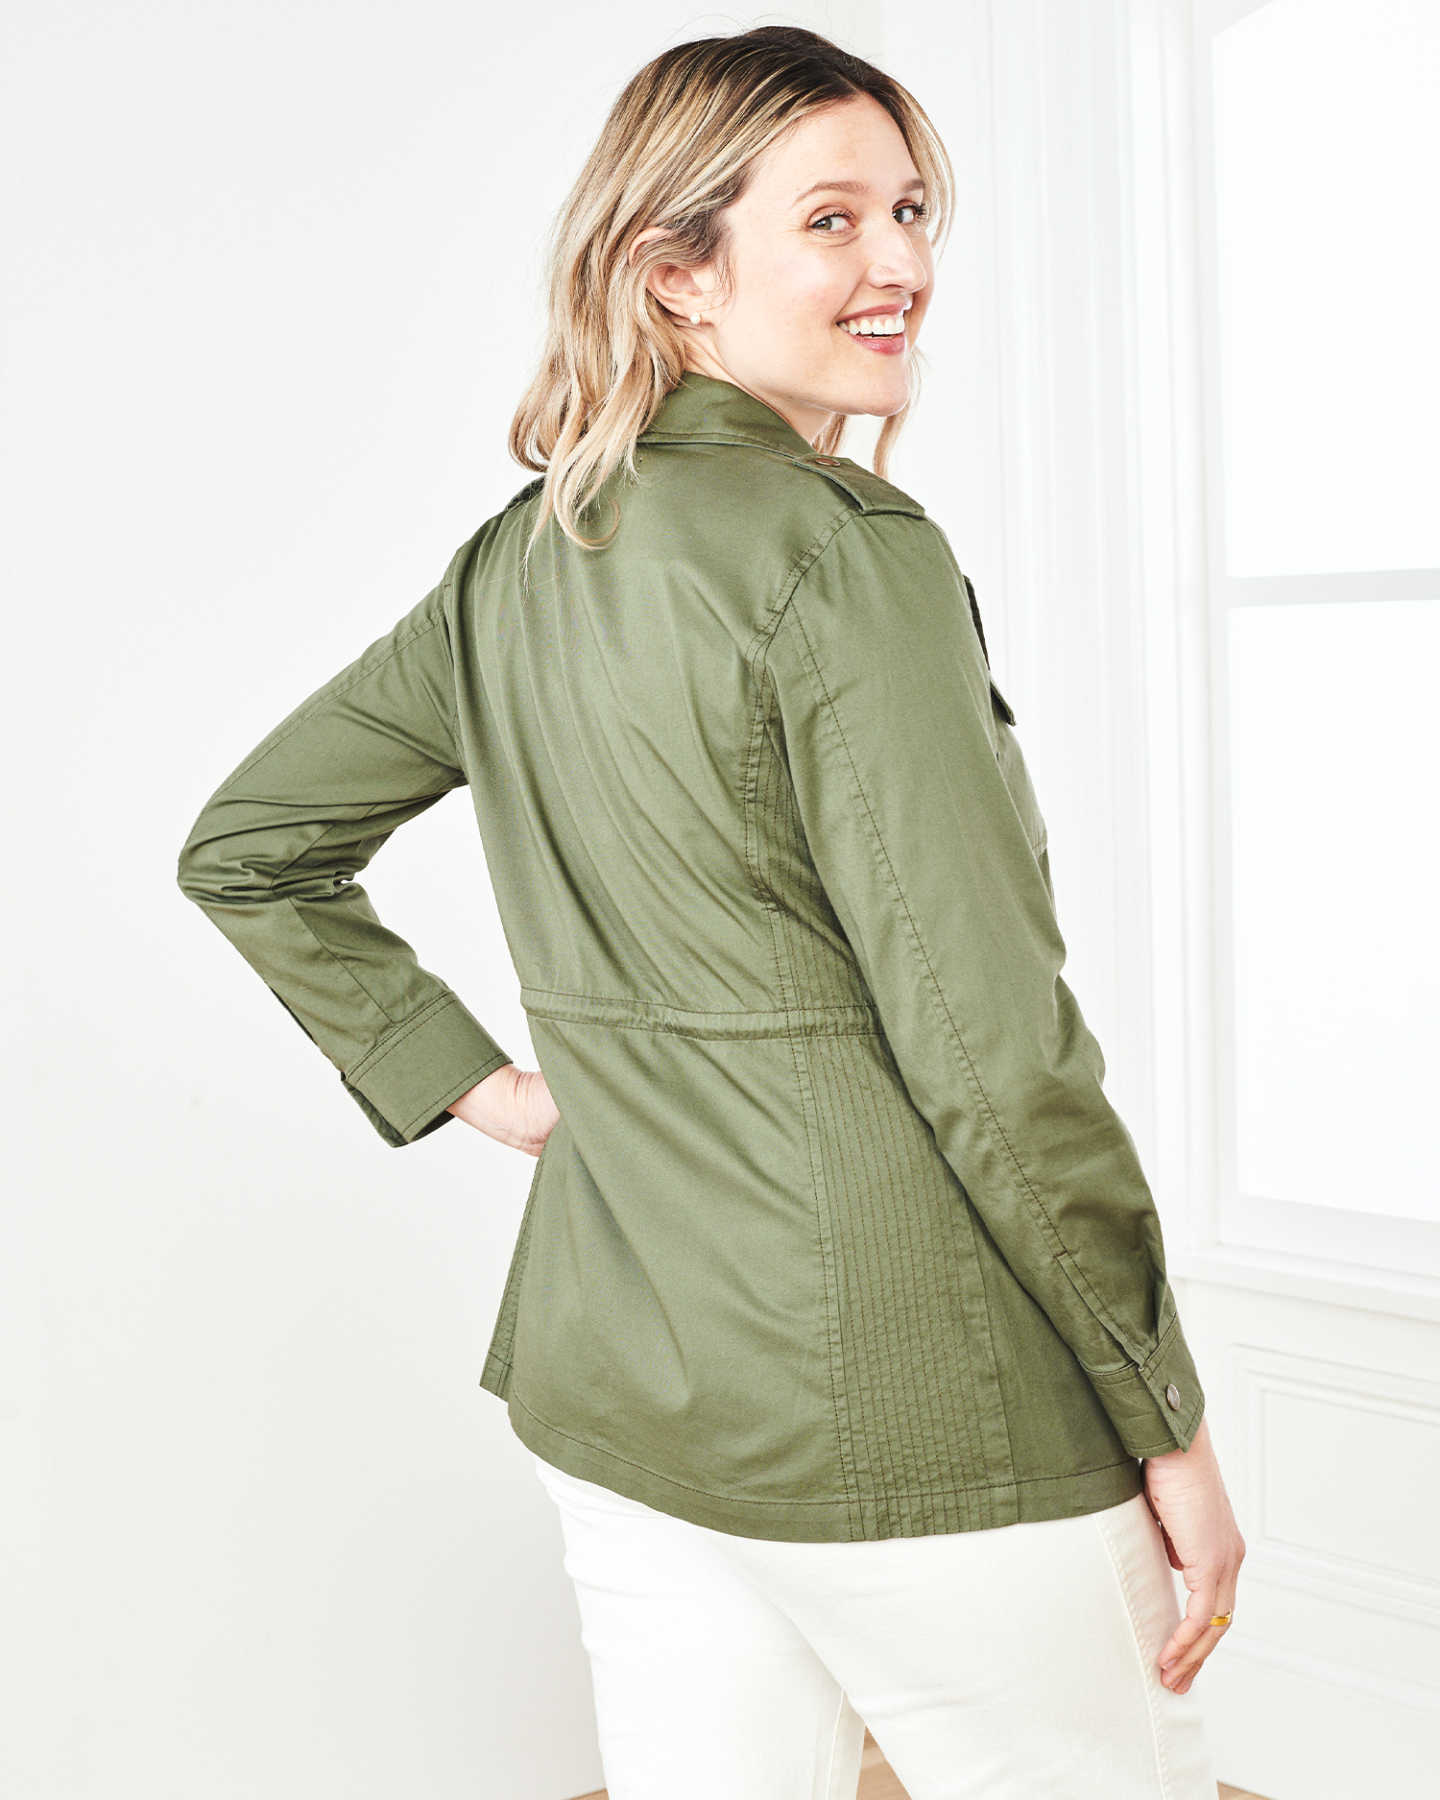 Cotton Twill Utility Jacket - Olive - 2